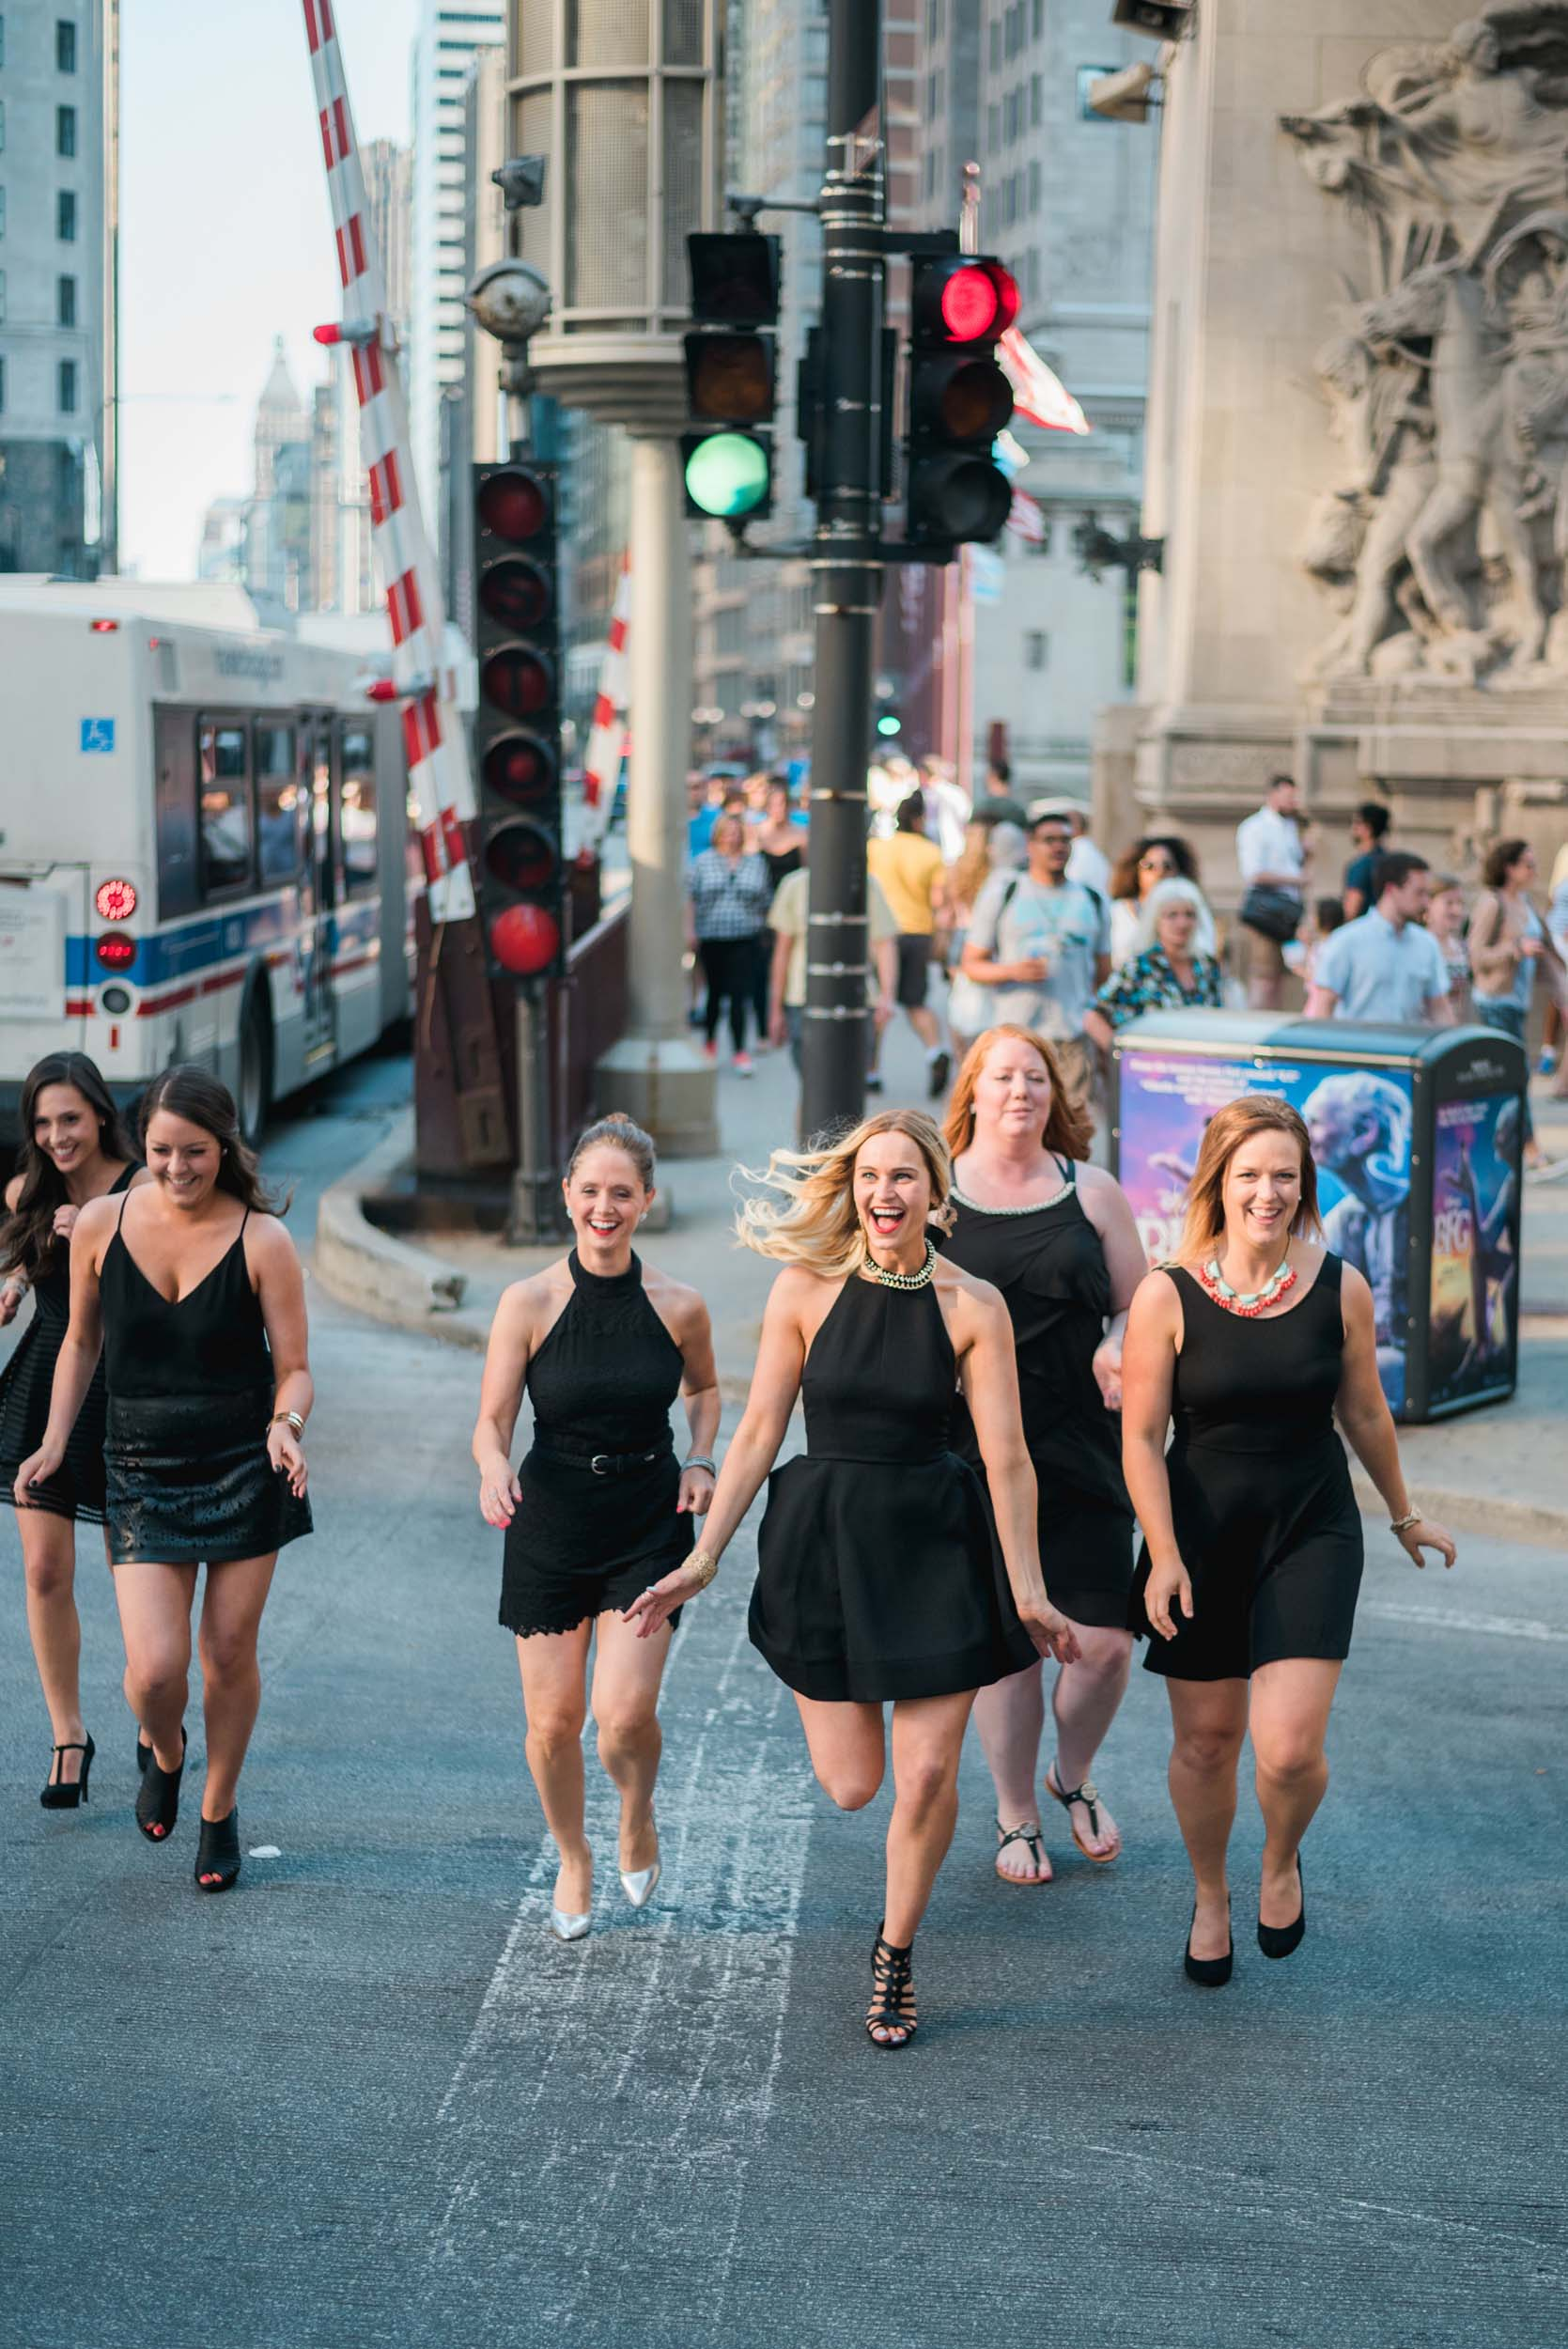 Six female friends on a bachelorette trip together crossing an intersection and laughing in Chicago, USA